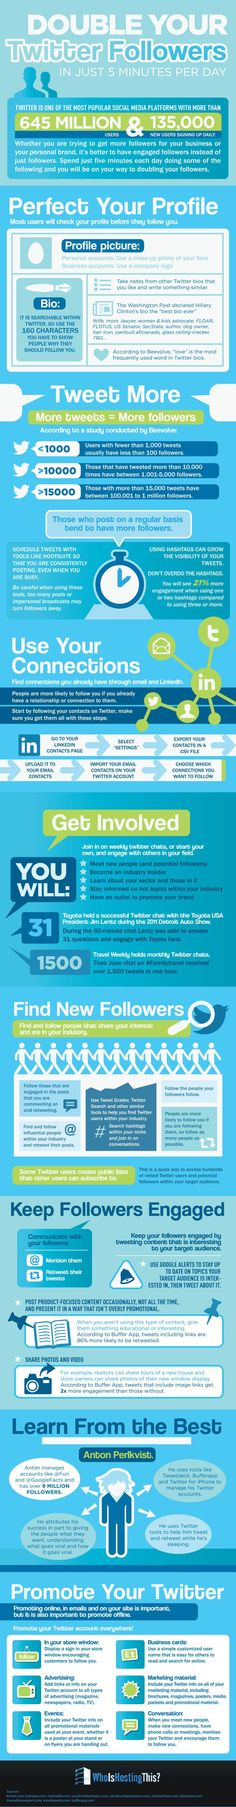 Double Your Twitter Followers in Just Five Minutes a Day